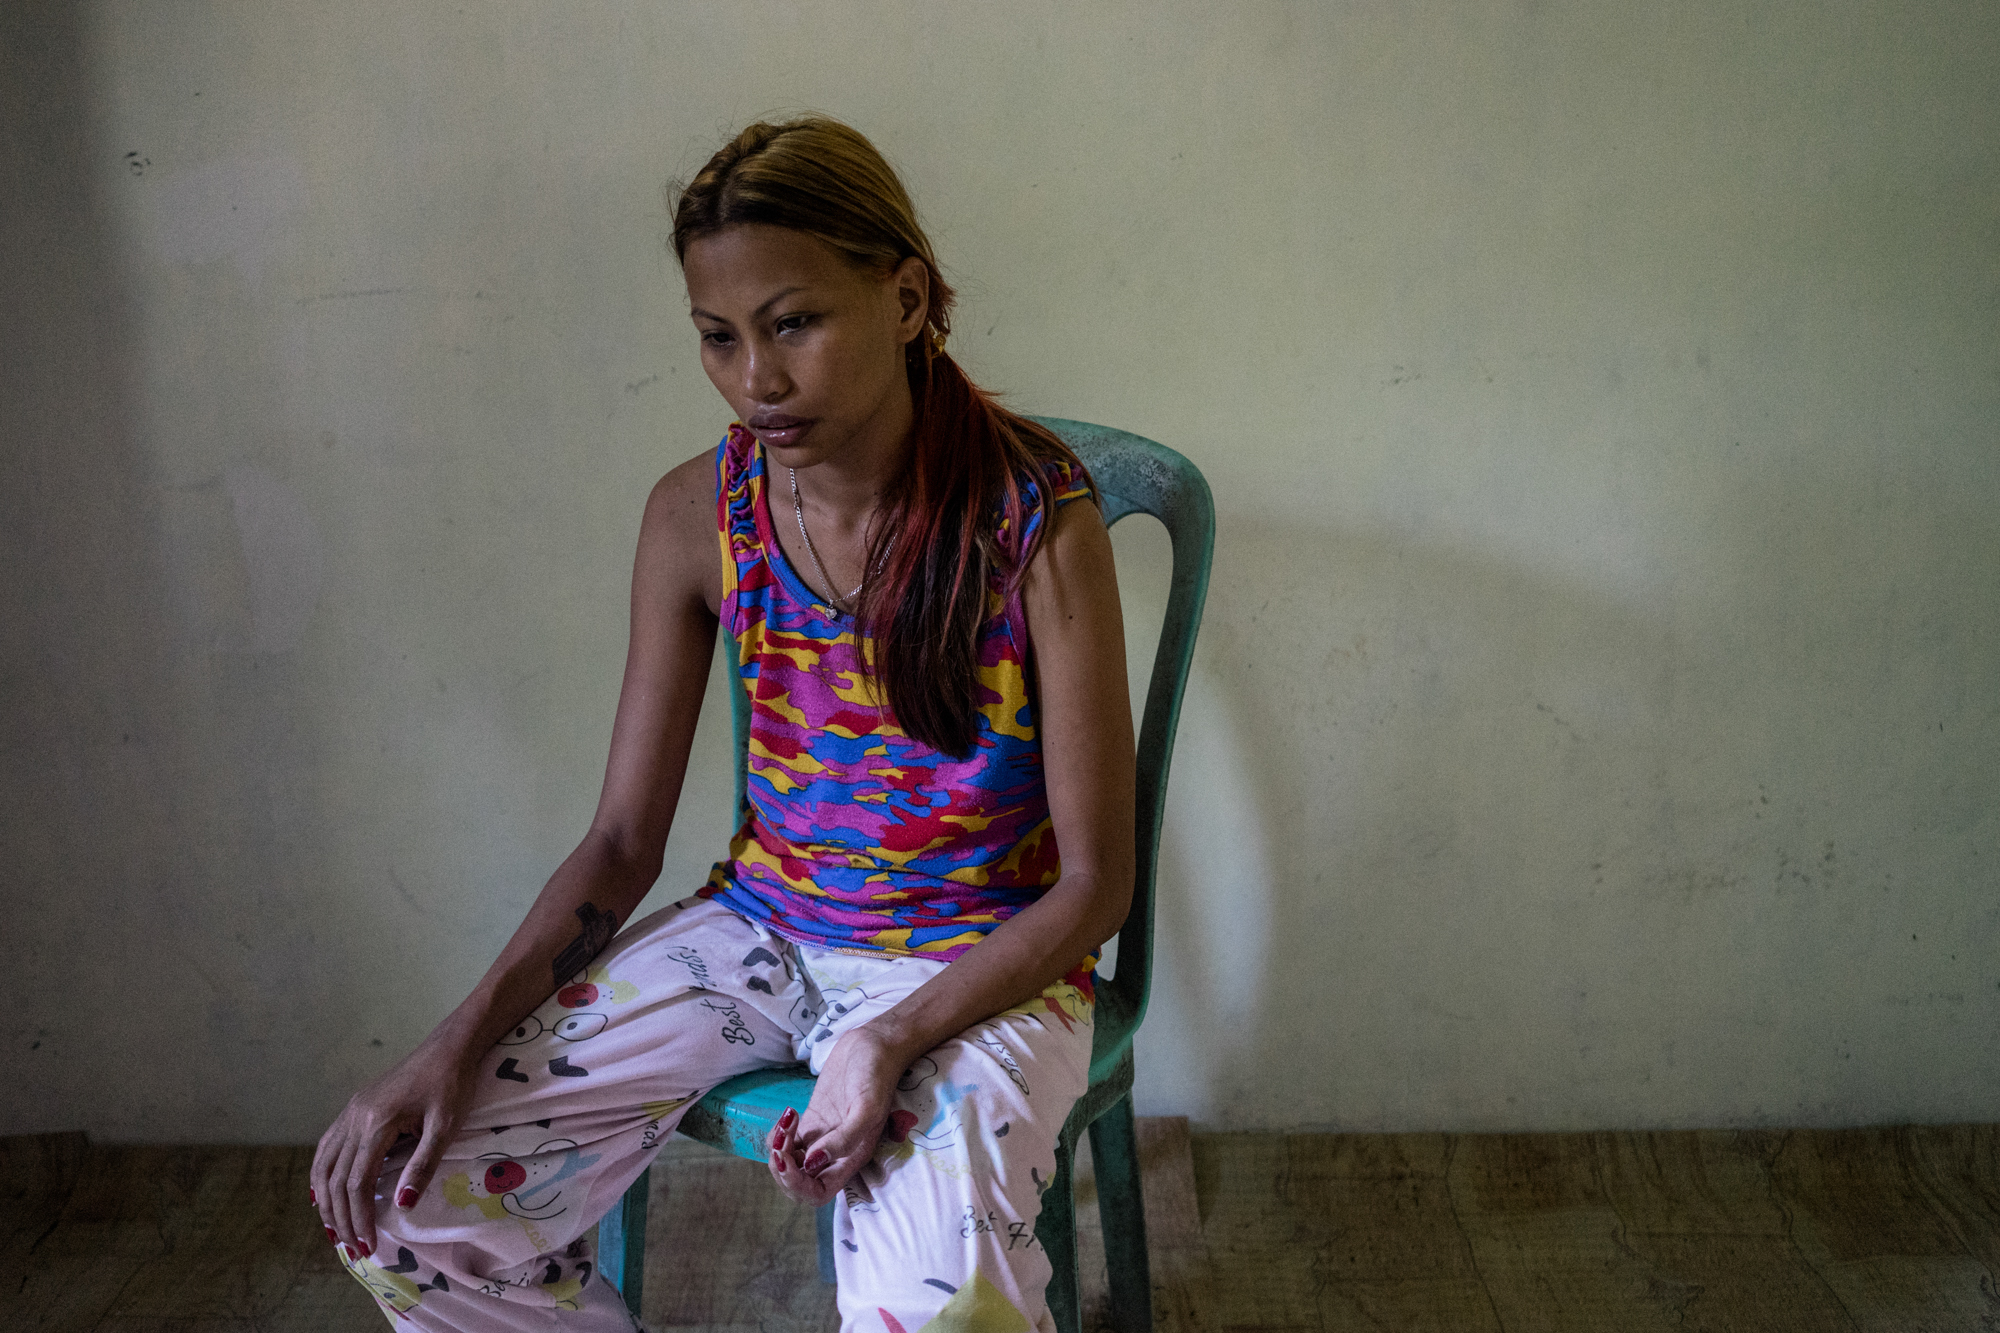 Jojo, who became a sex worker after a typhoon significantly damaged her home, sits in her house in Angeles City, notorious for its sex tourism and red light district. (Photo by Hannah Reyes Morales/GroundTruth)